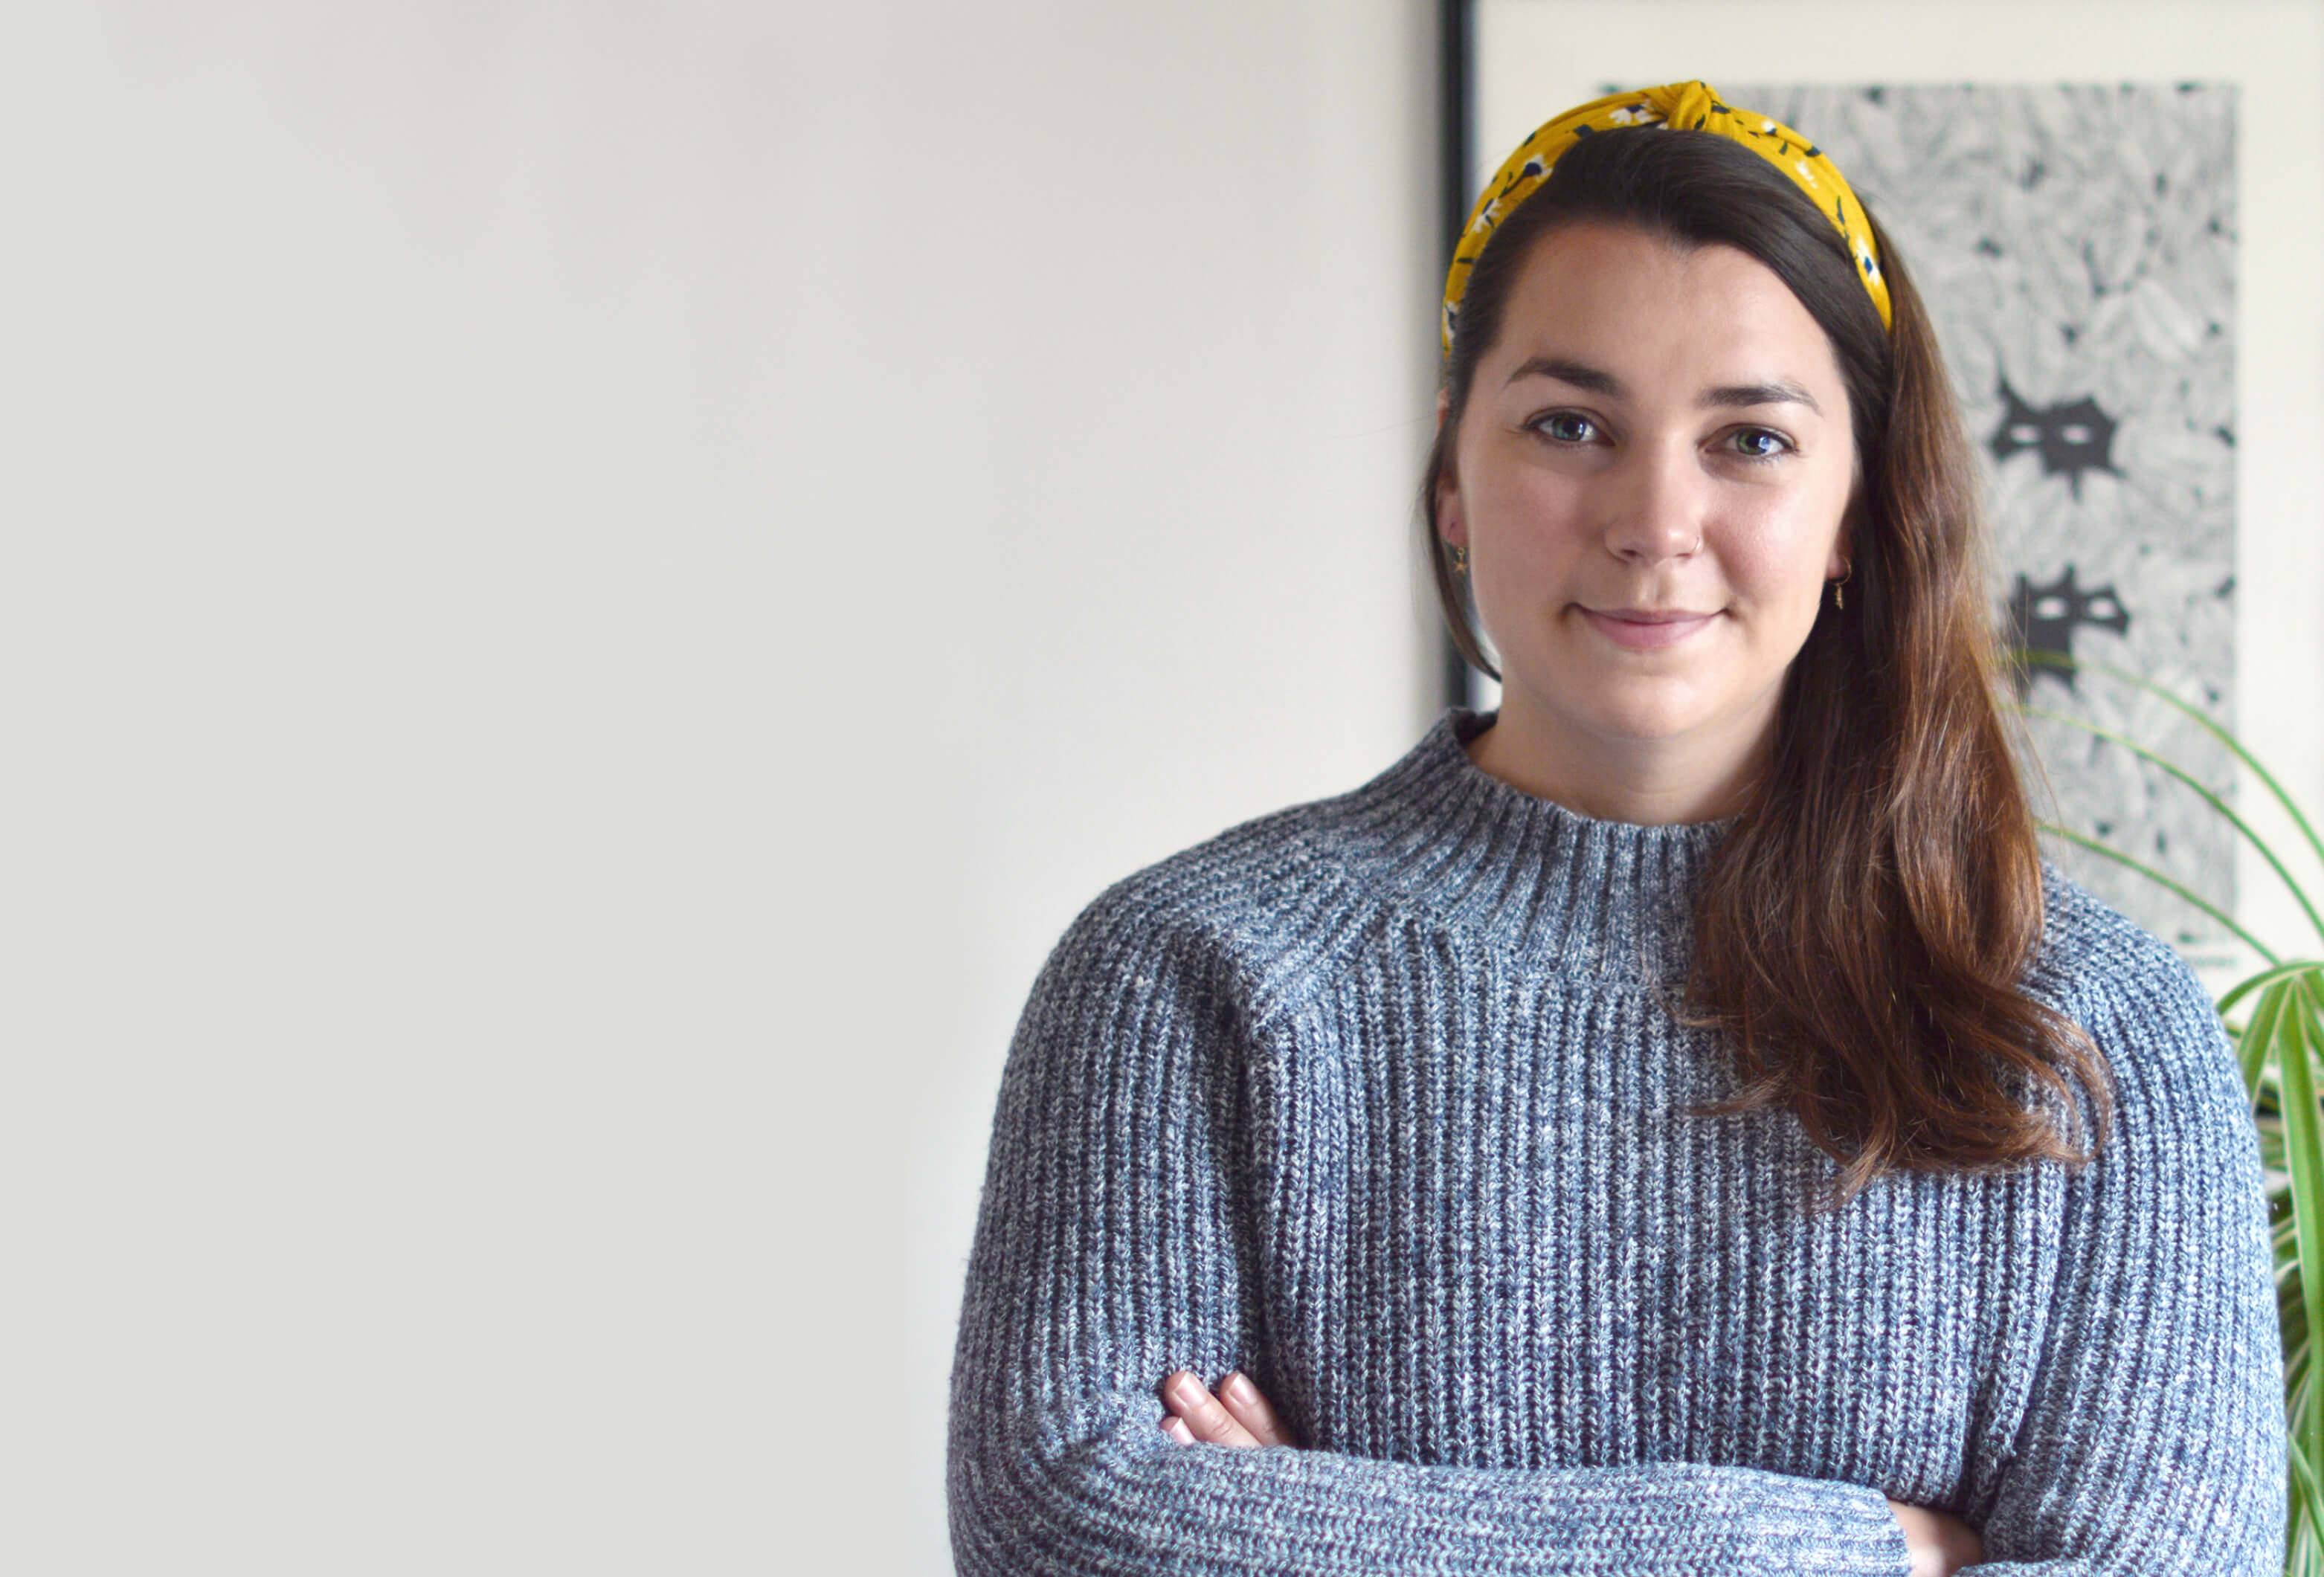 Arobase Creative announce the hiring of Poppy Fitzjohn as their newest graphic designer.